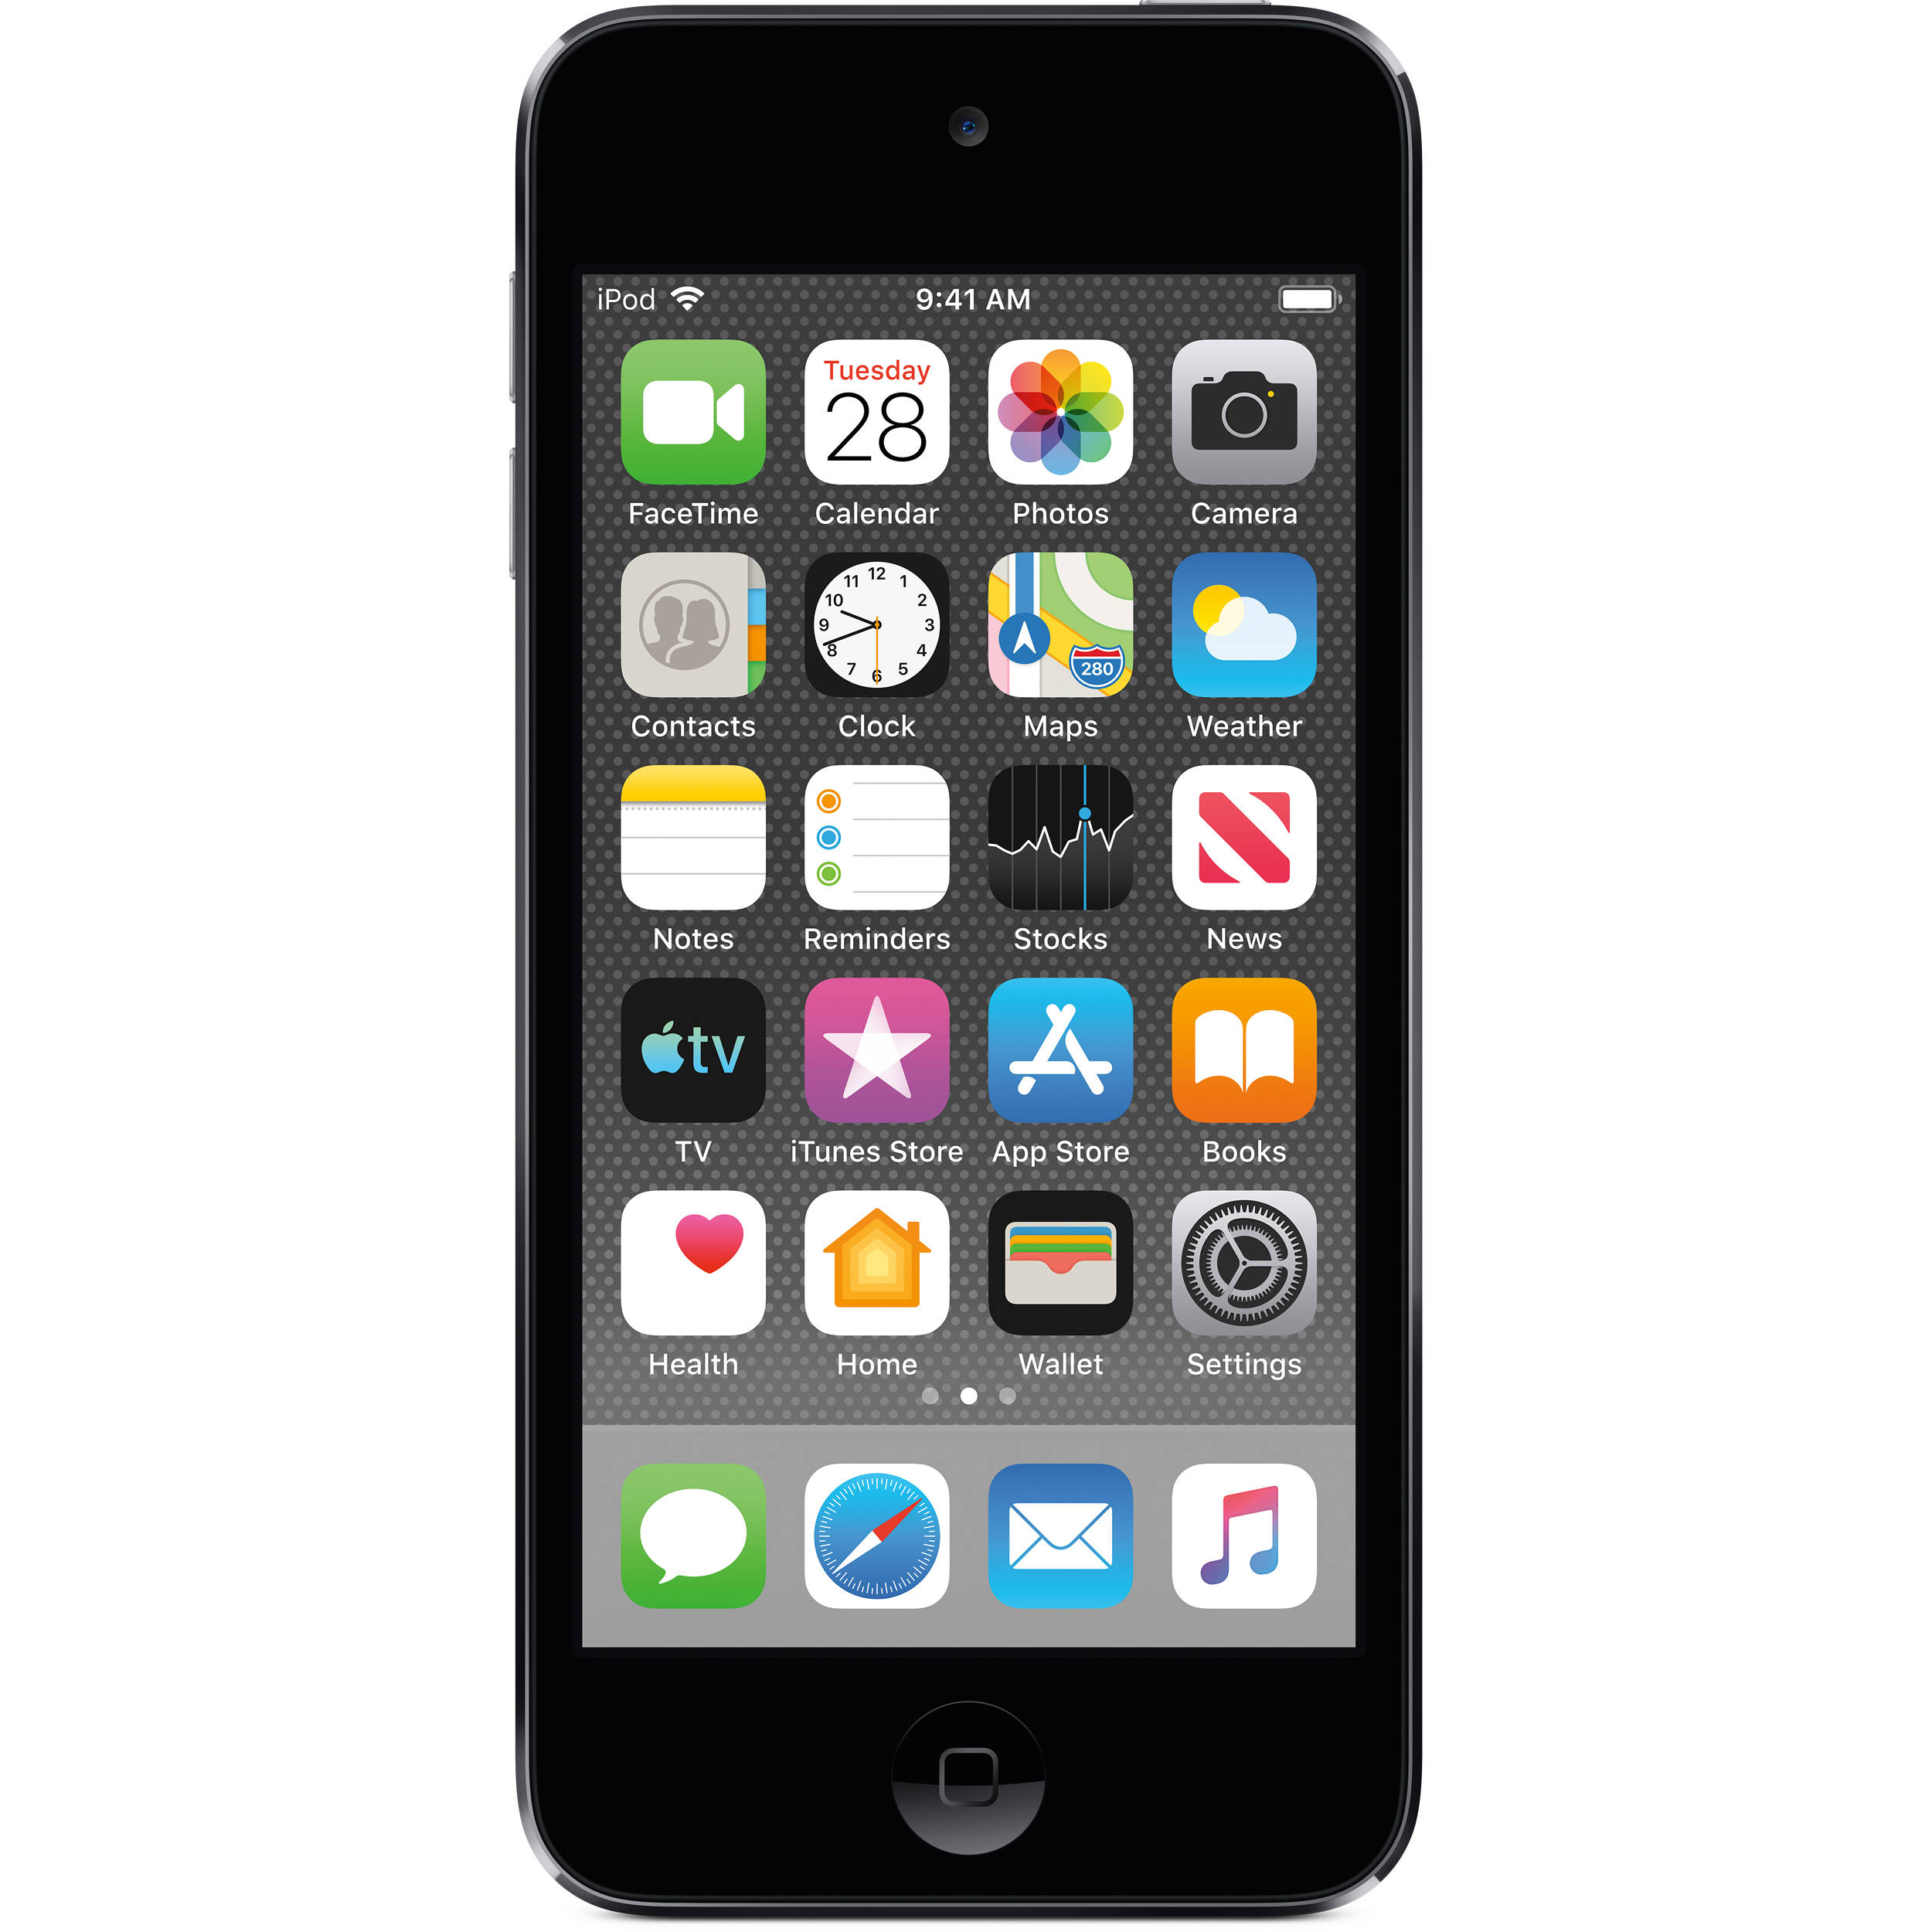 touch ipod 7th apple 32gb generation space gray 256gb 128gb features key a10 adorama bhphotovideo retina display